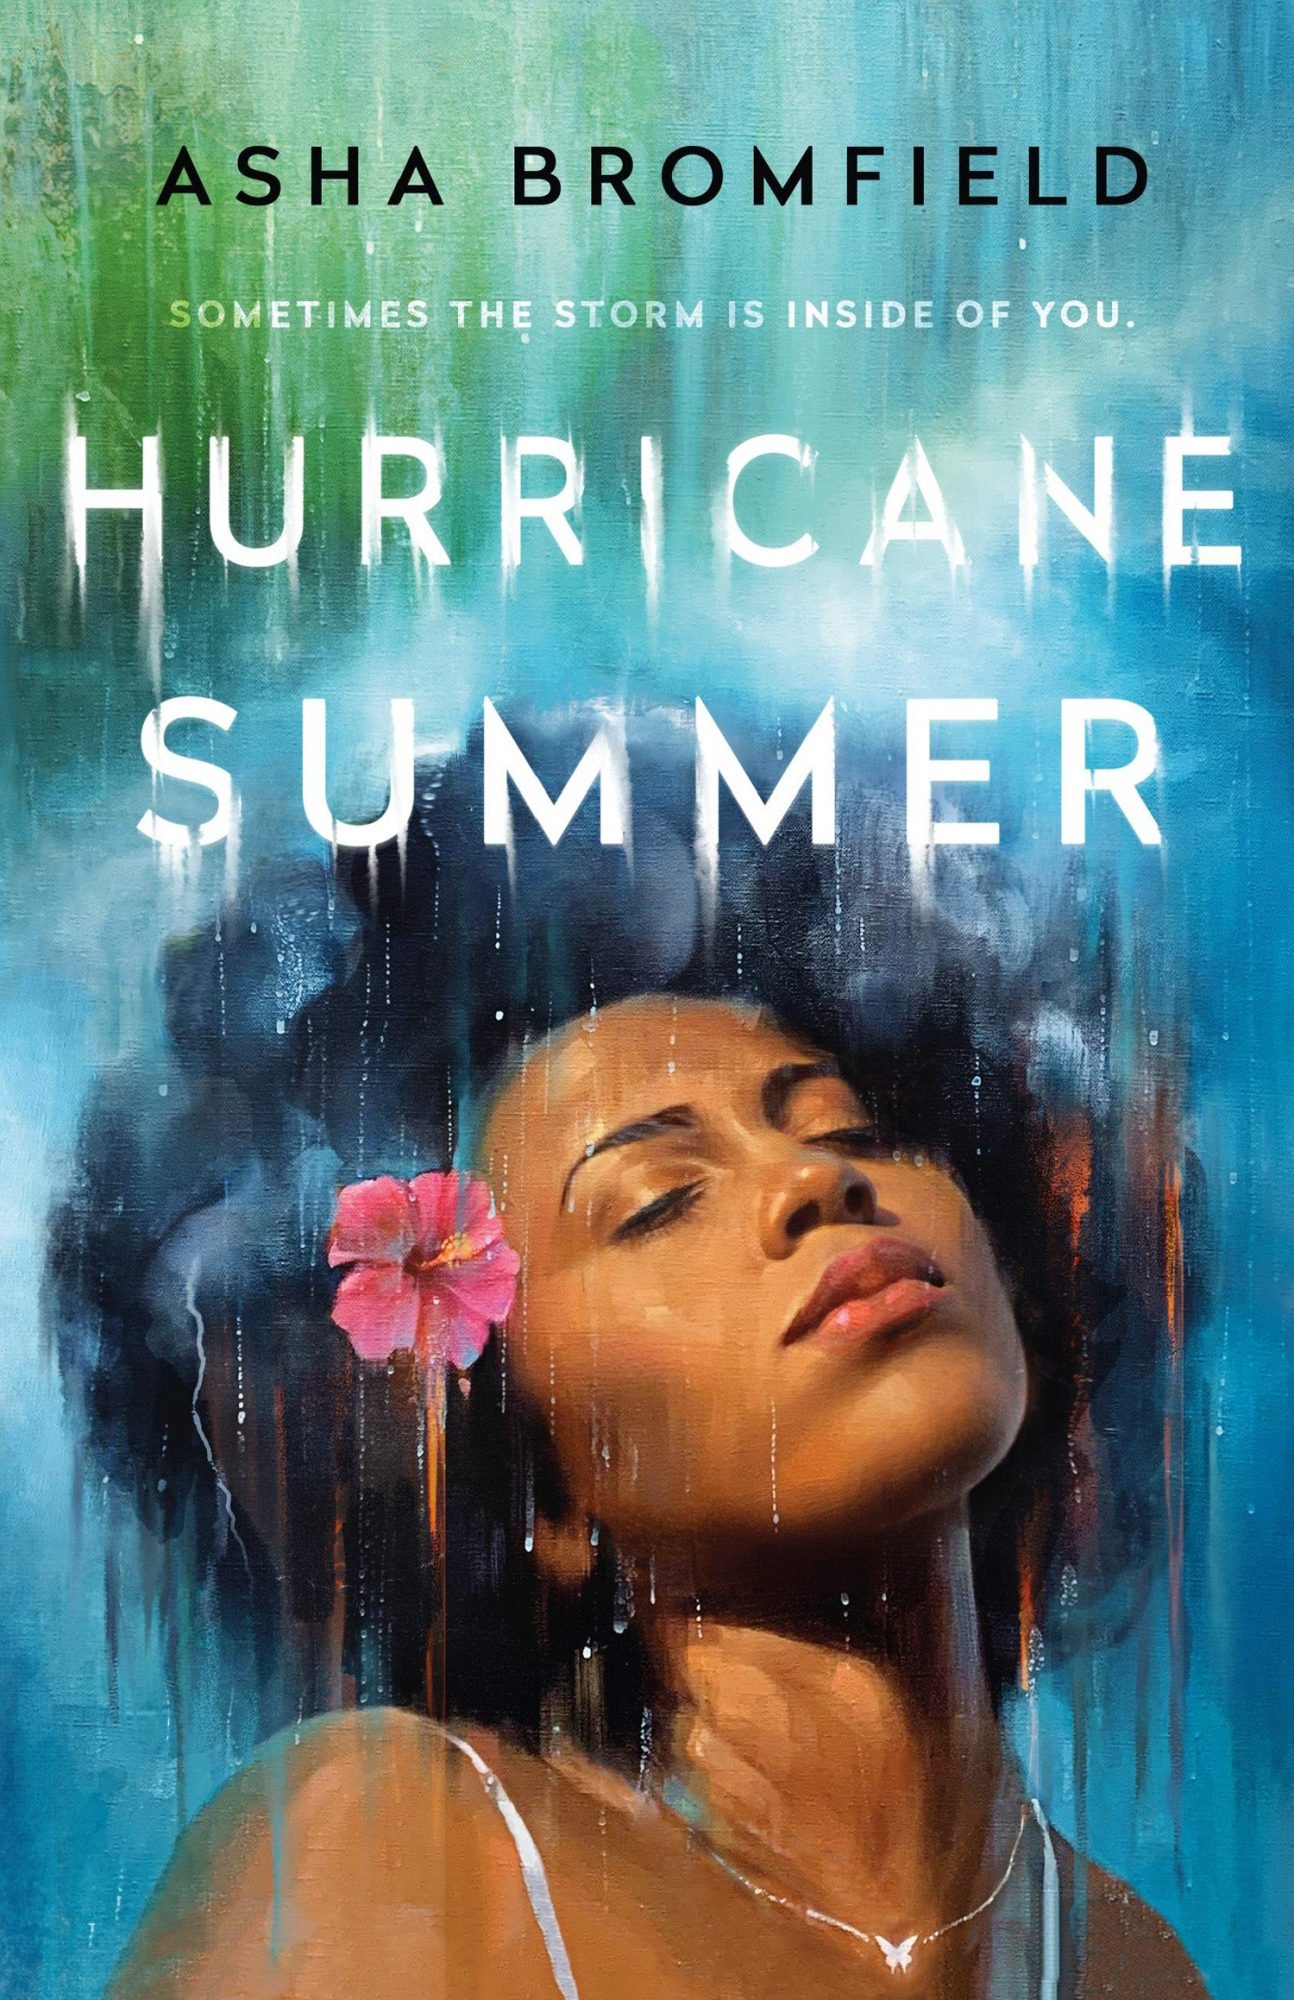 Hurricane Summer by Asha Bromfield